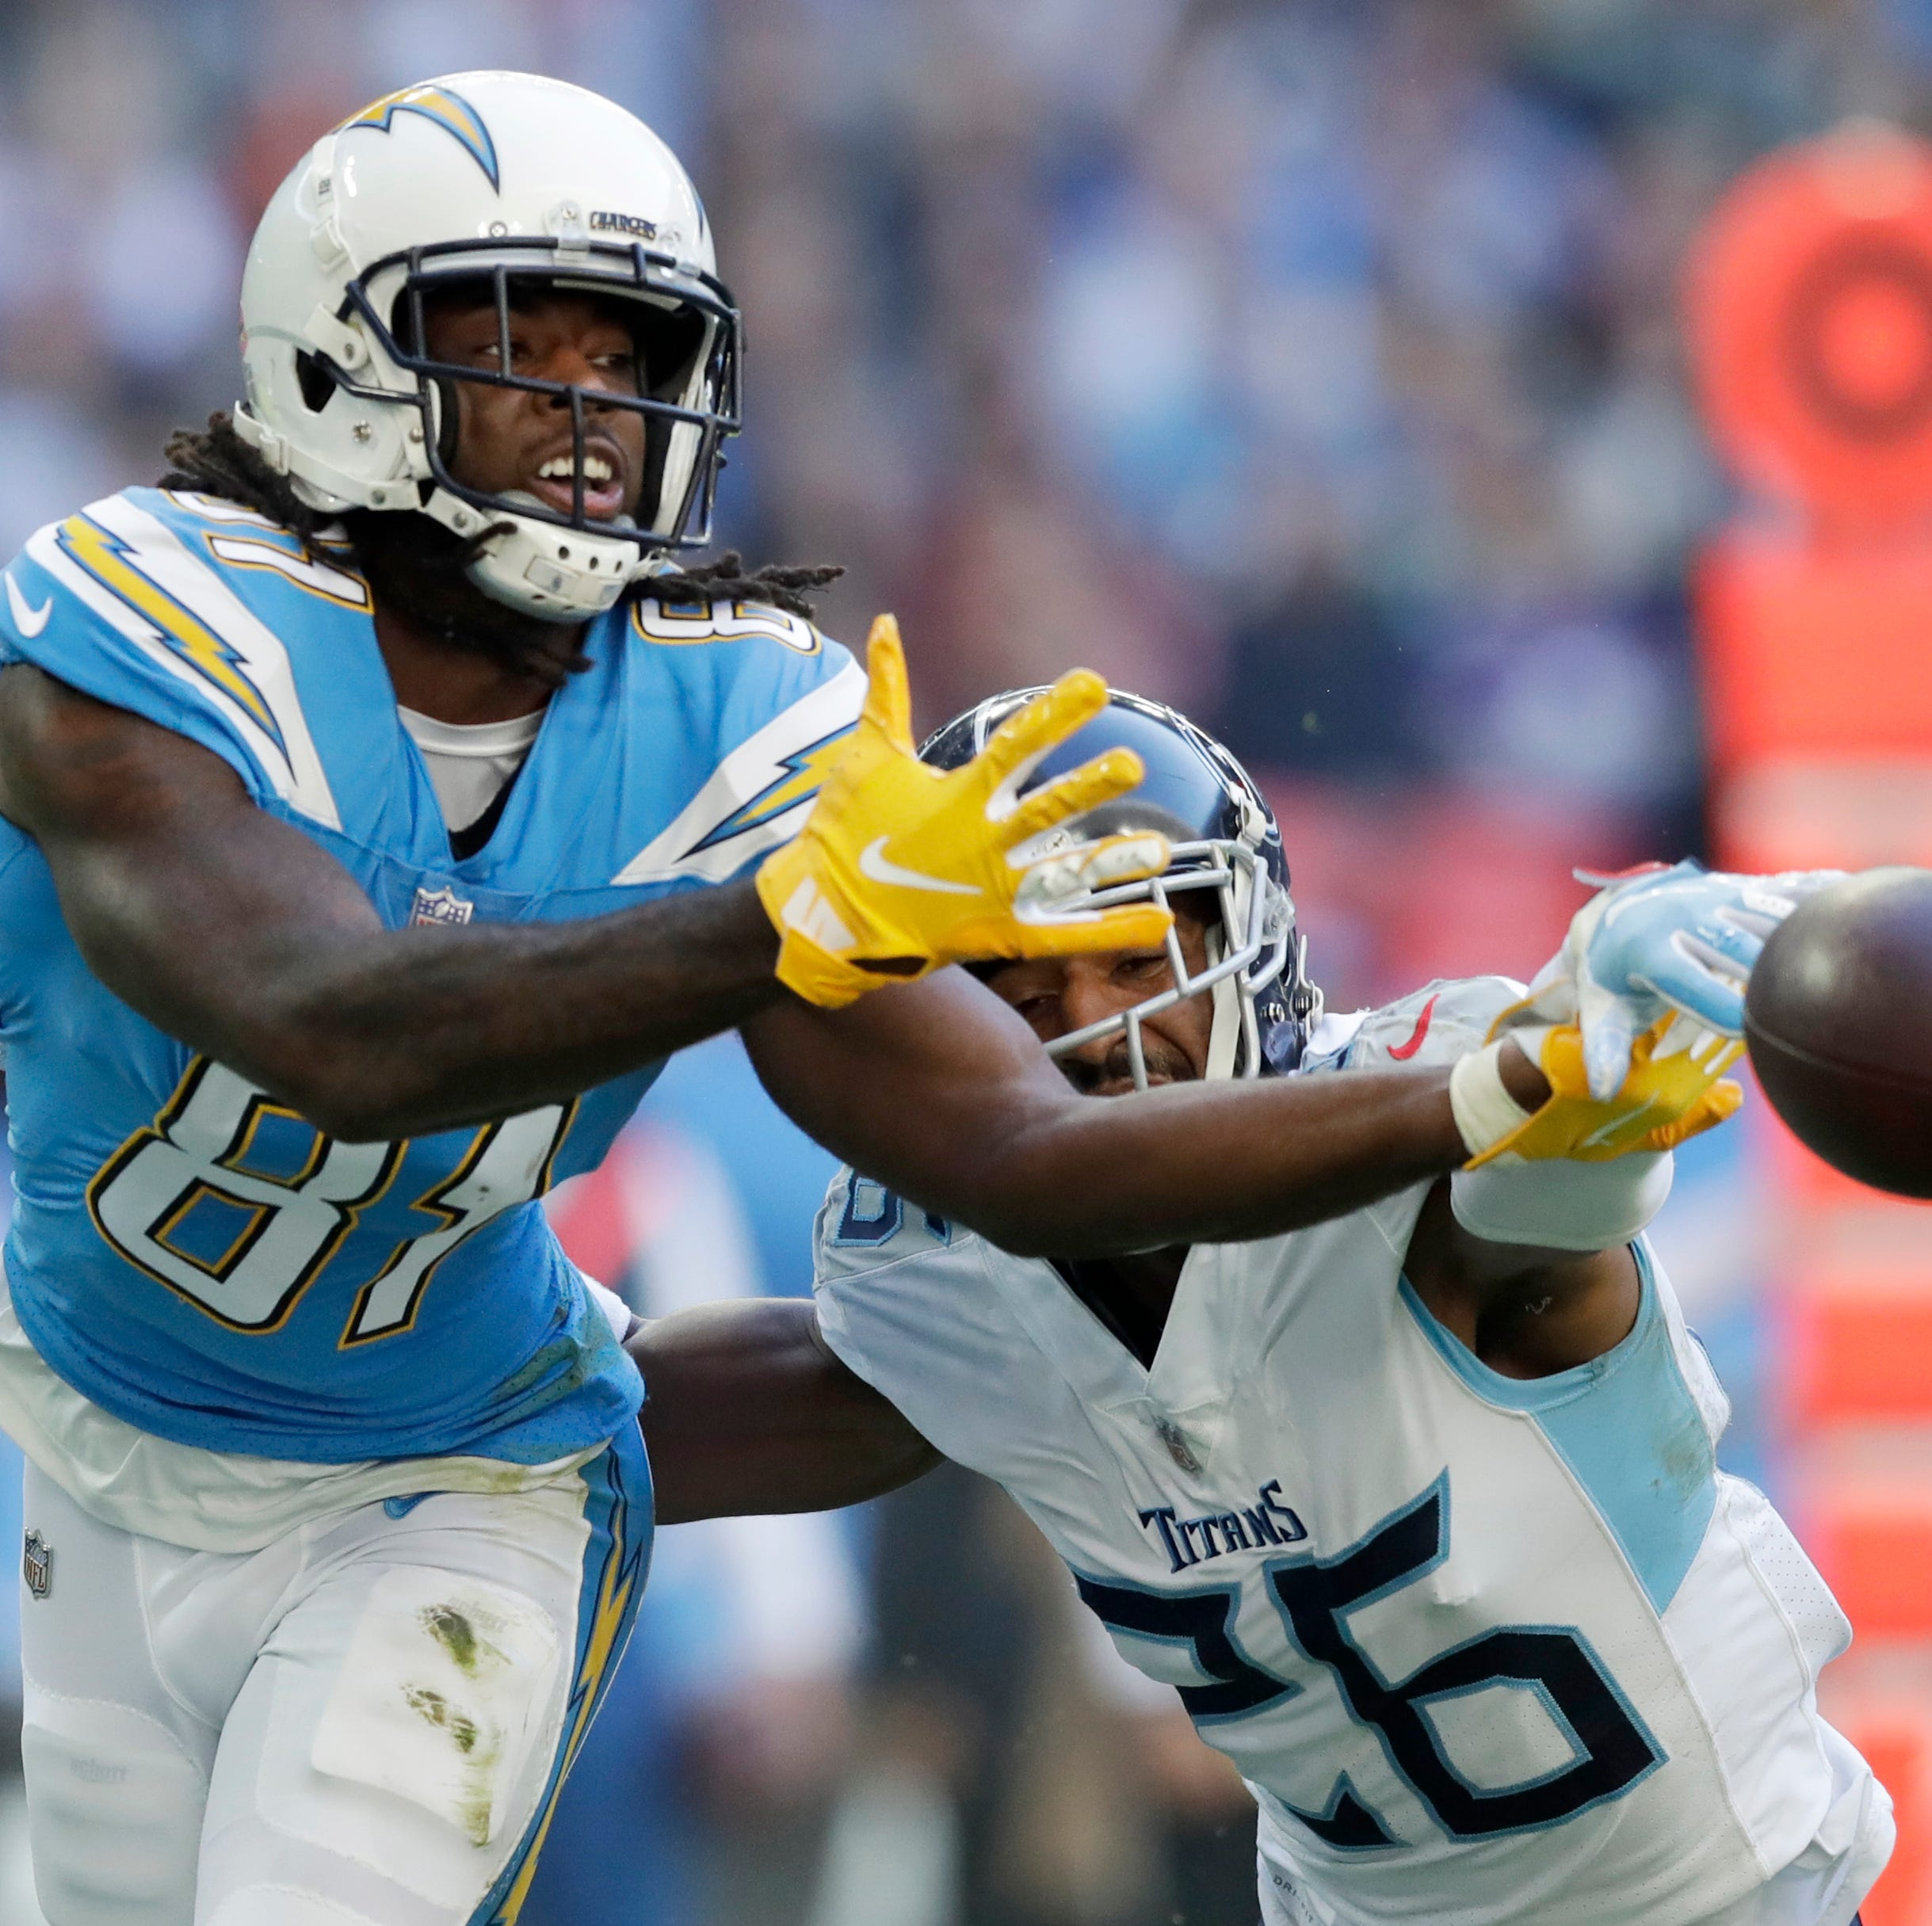 Chargers 20, Titans 19: Five things to know from London loss